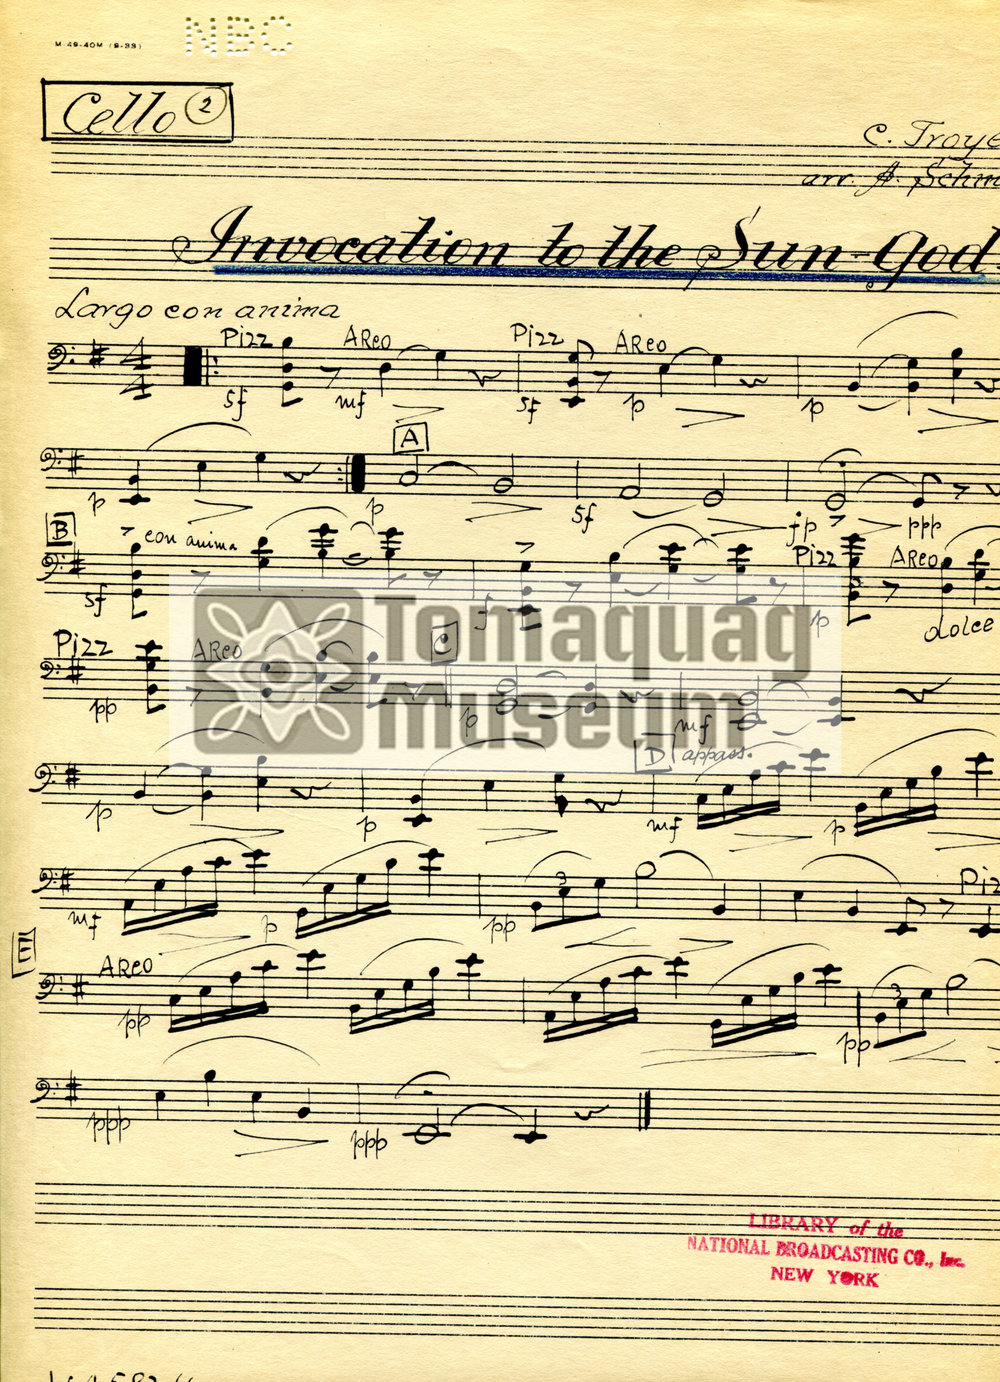 HoteCasellaInvocation of the Sun God Sheet Music Cello.jpg